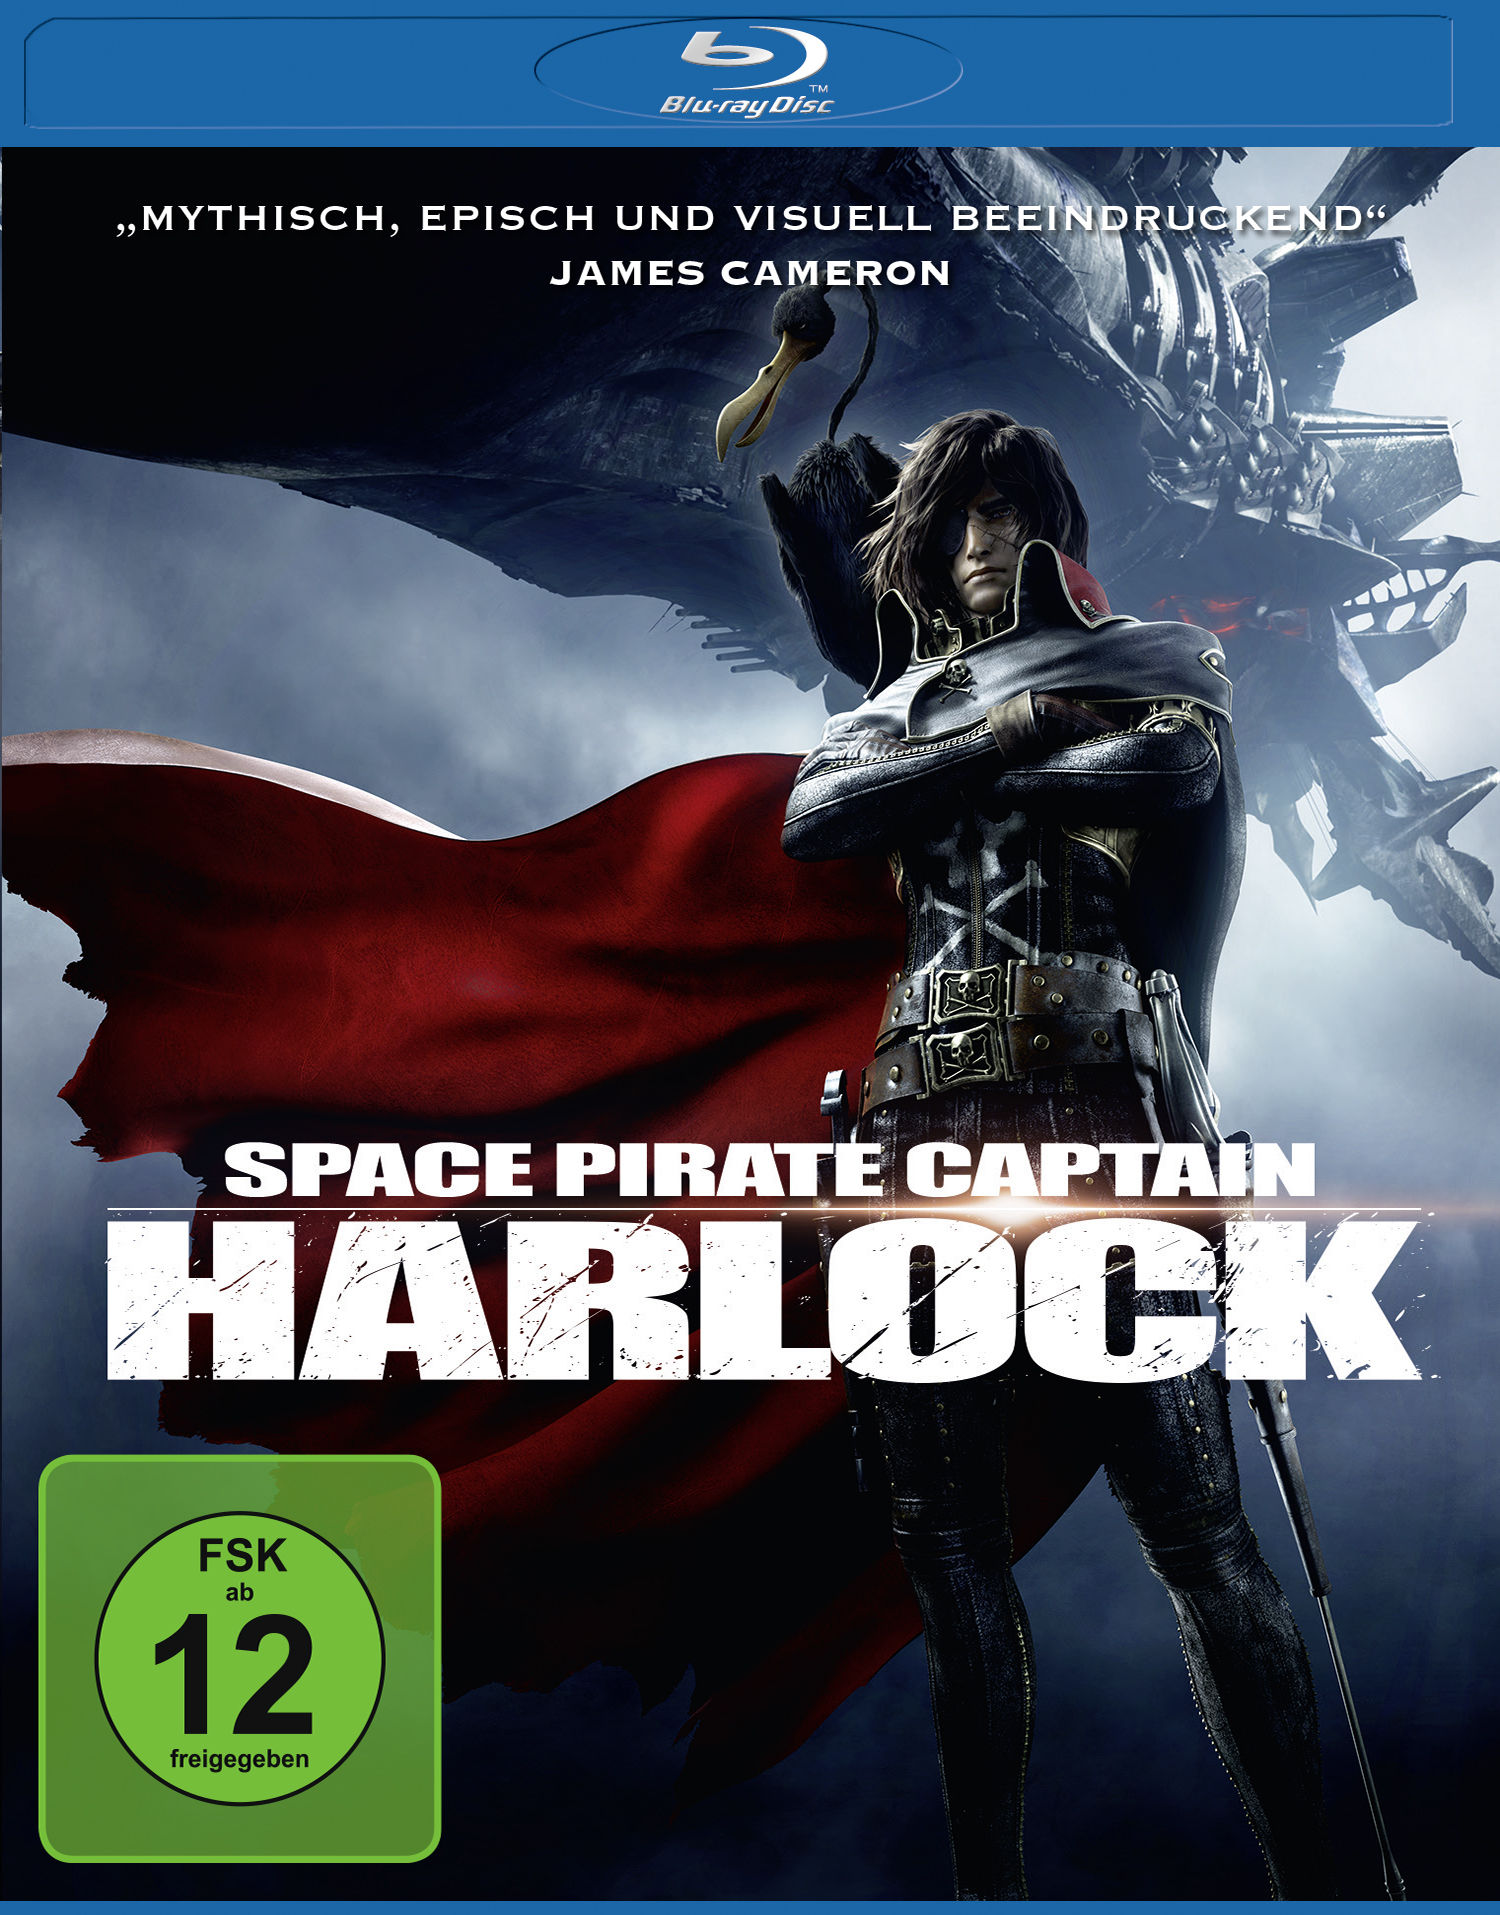 Space_Pirate_Captain_Harlock_BD_Bluray_888430642690_2D.72dpi